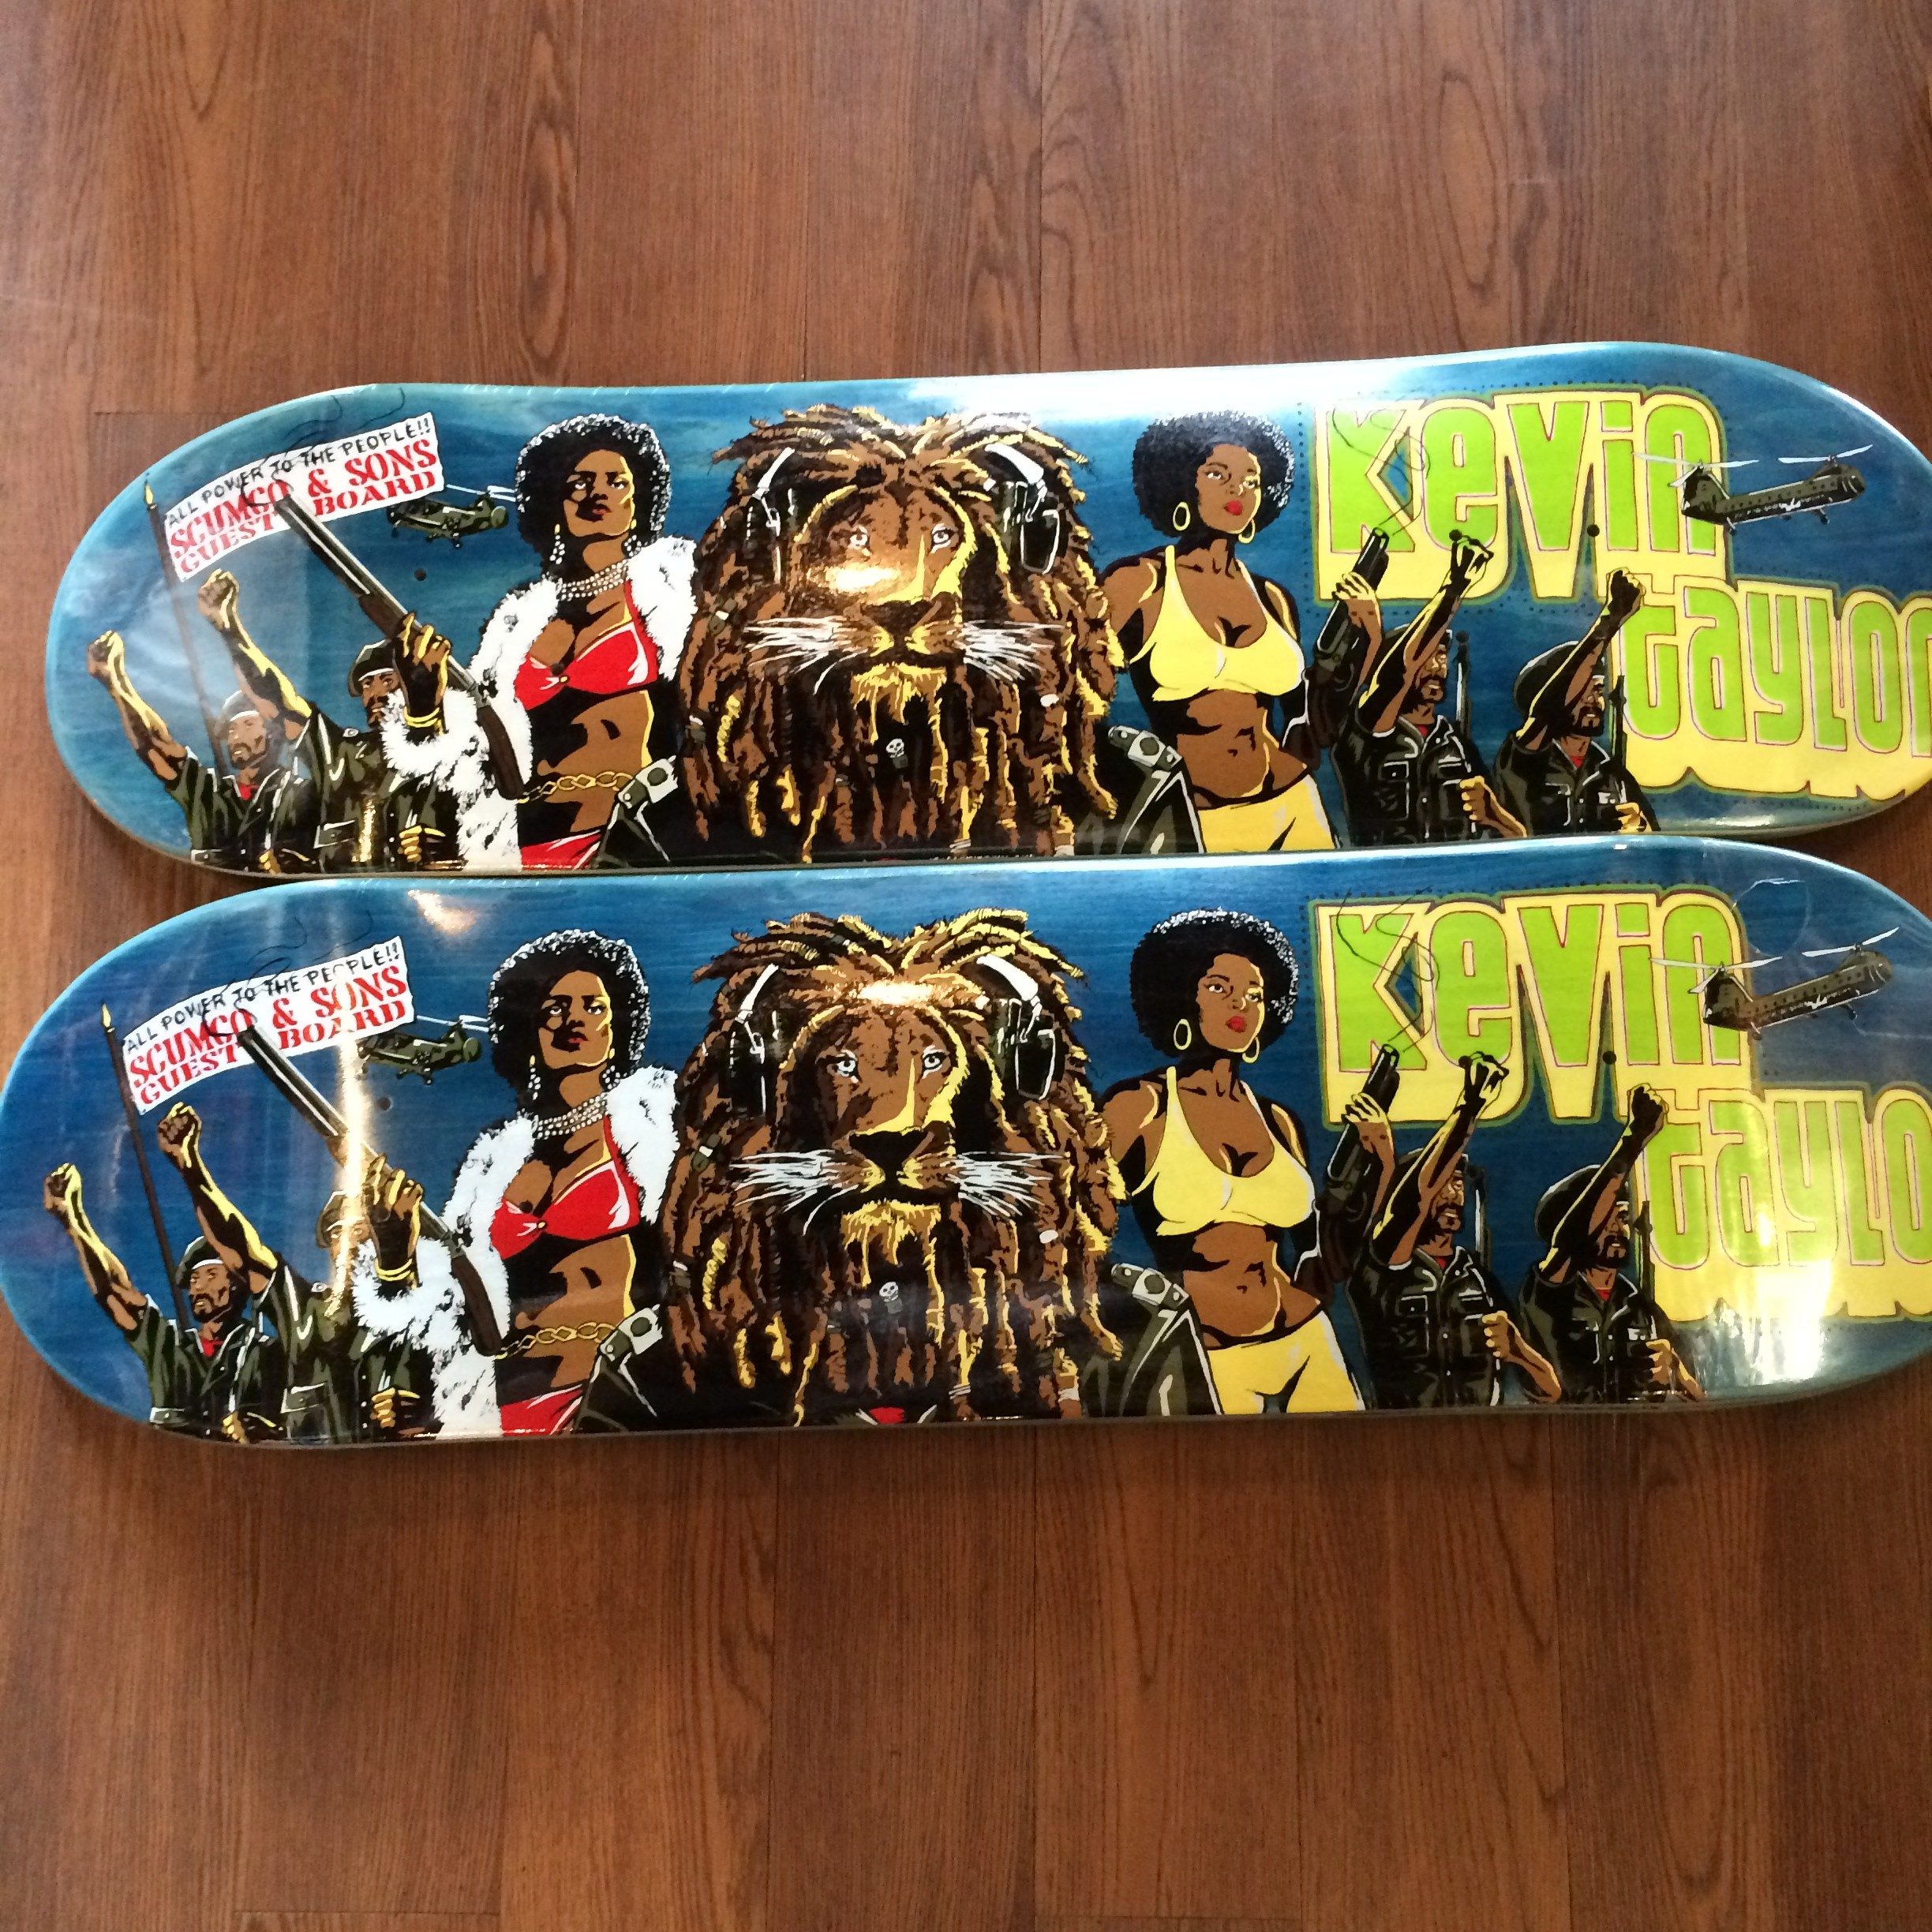 All New Decks From Politic   Scumco   sons Just Came In. Tons Of sizes  available. This ... c01895ce0ca